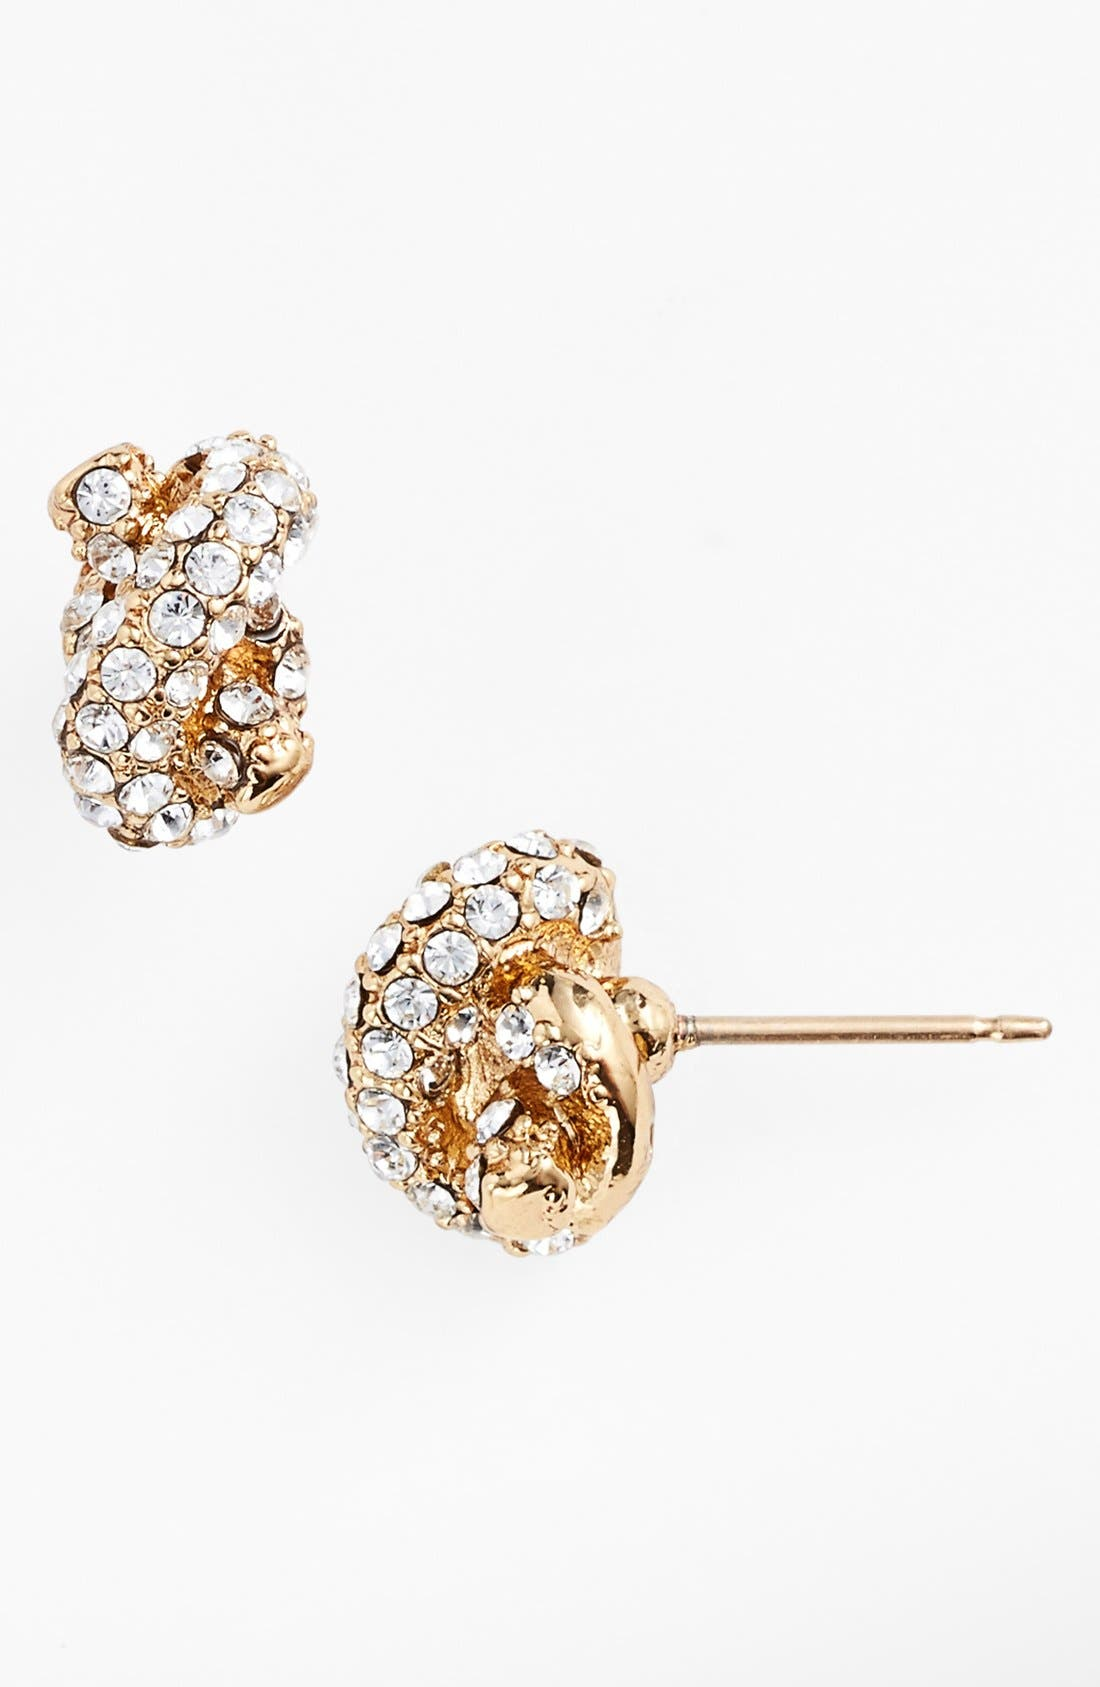 Main Image - kate spade new york 'sailors' knot' stud earrings